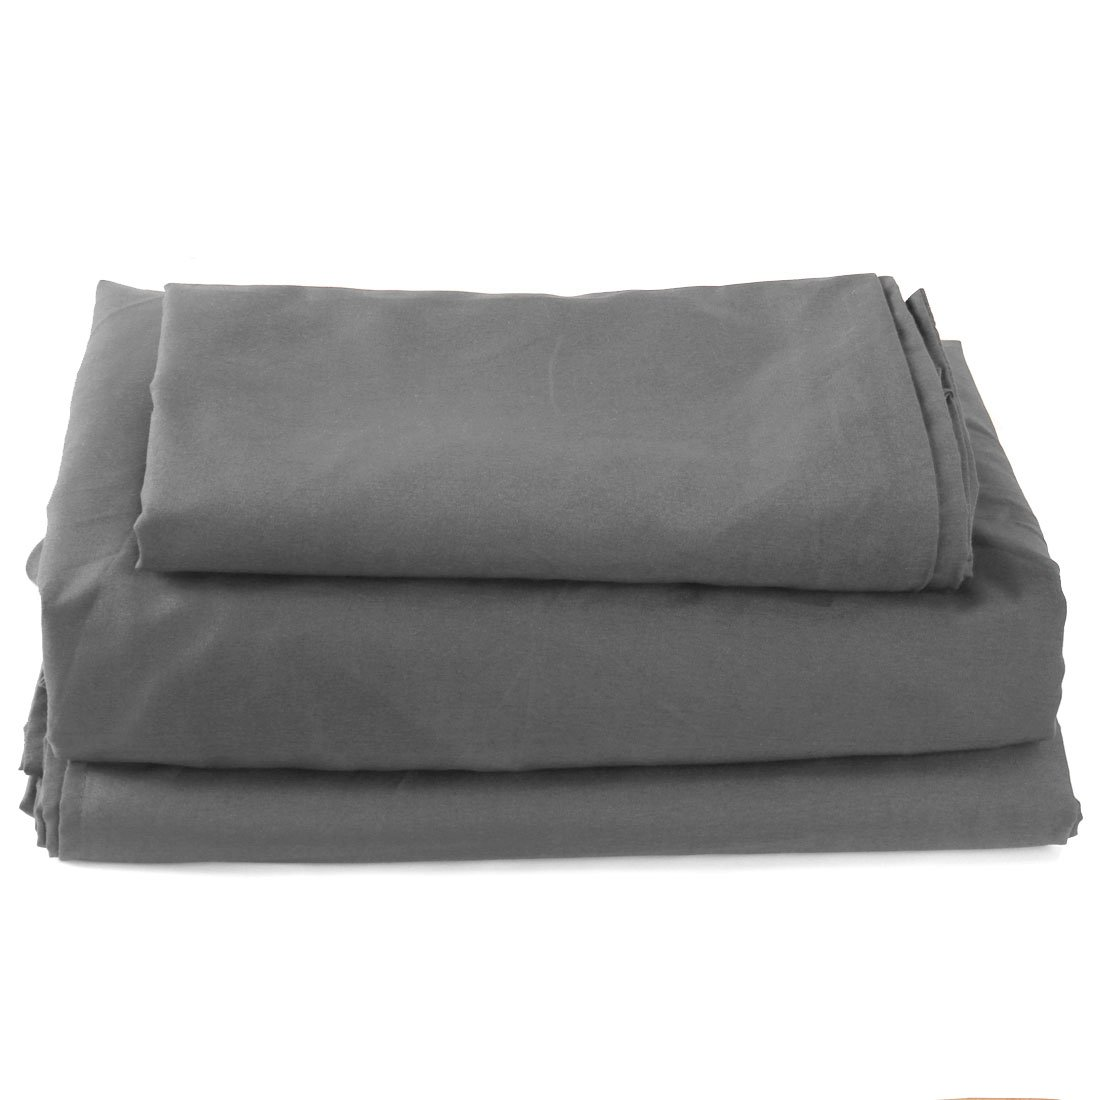 """uxcell Bed Sheets Set, Soft Brushed Microfiber 4-Piece Bed Linen Set with 16"""" Deep Pocket Fitted Sheet - (Queen, Dark Gray)"""